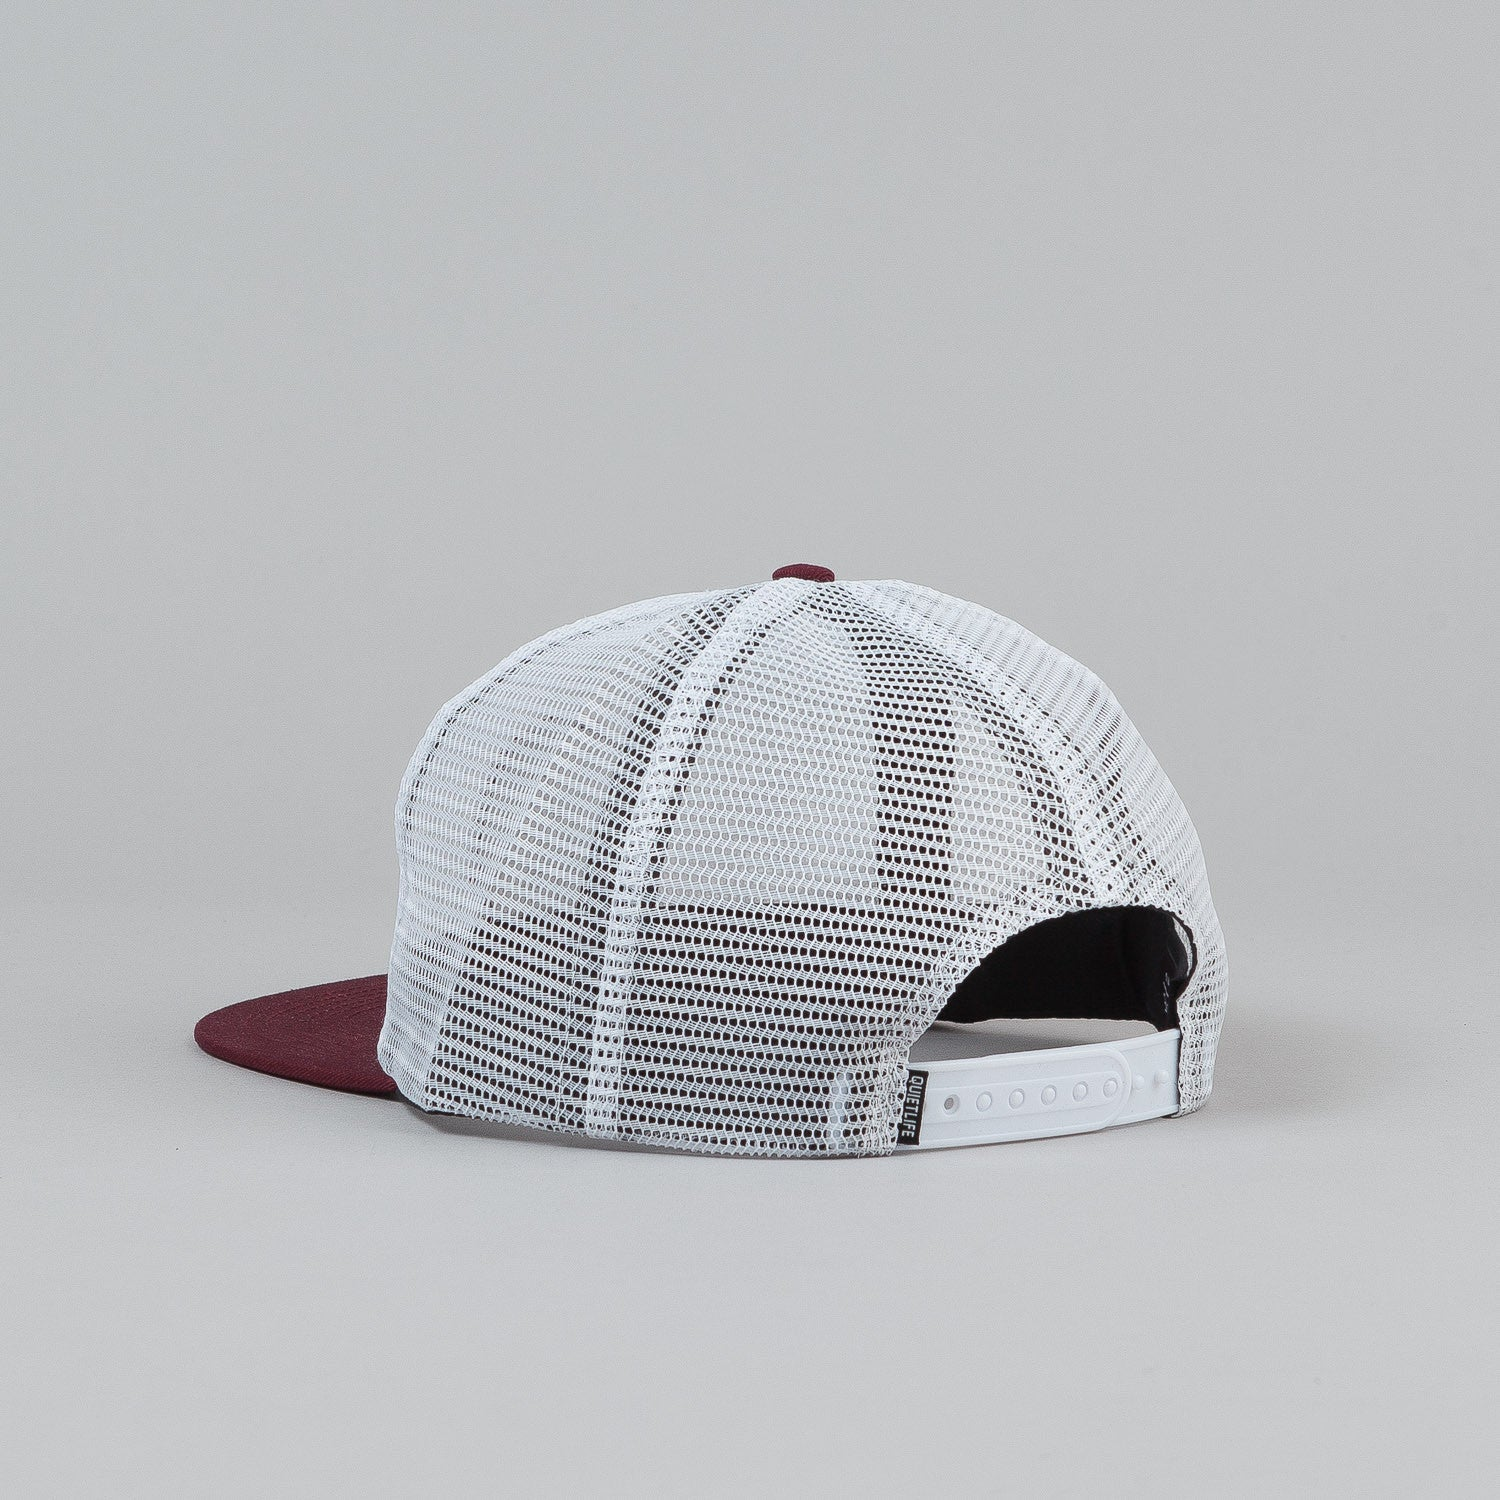 The Quiet Life Mesh Trucker Cap - White Upper